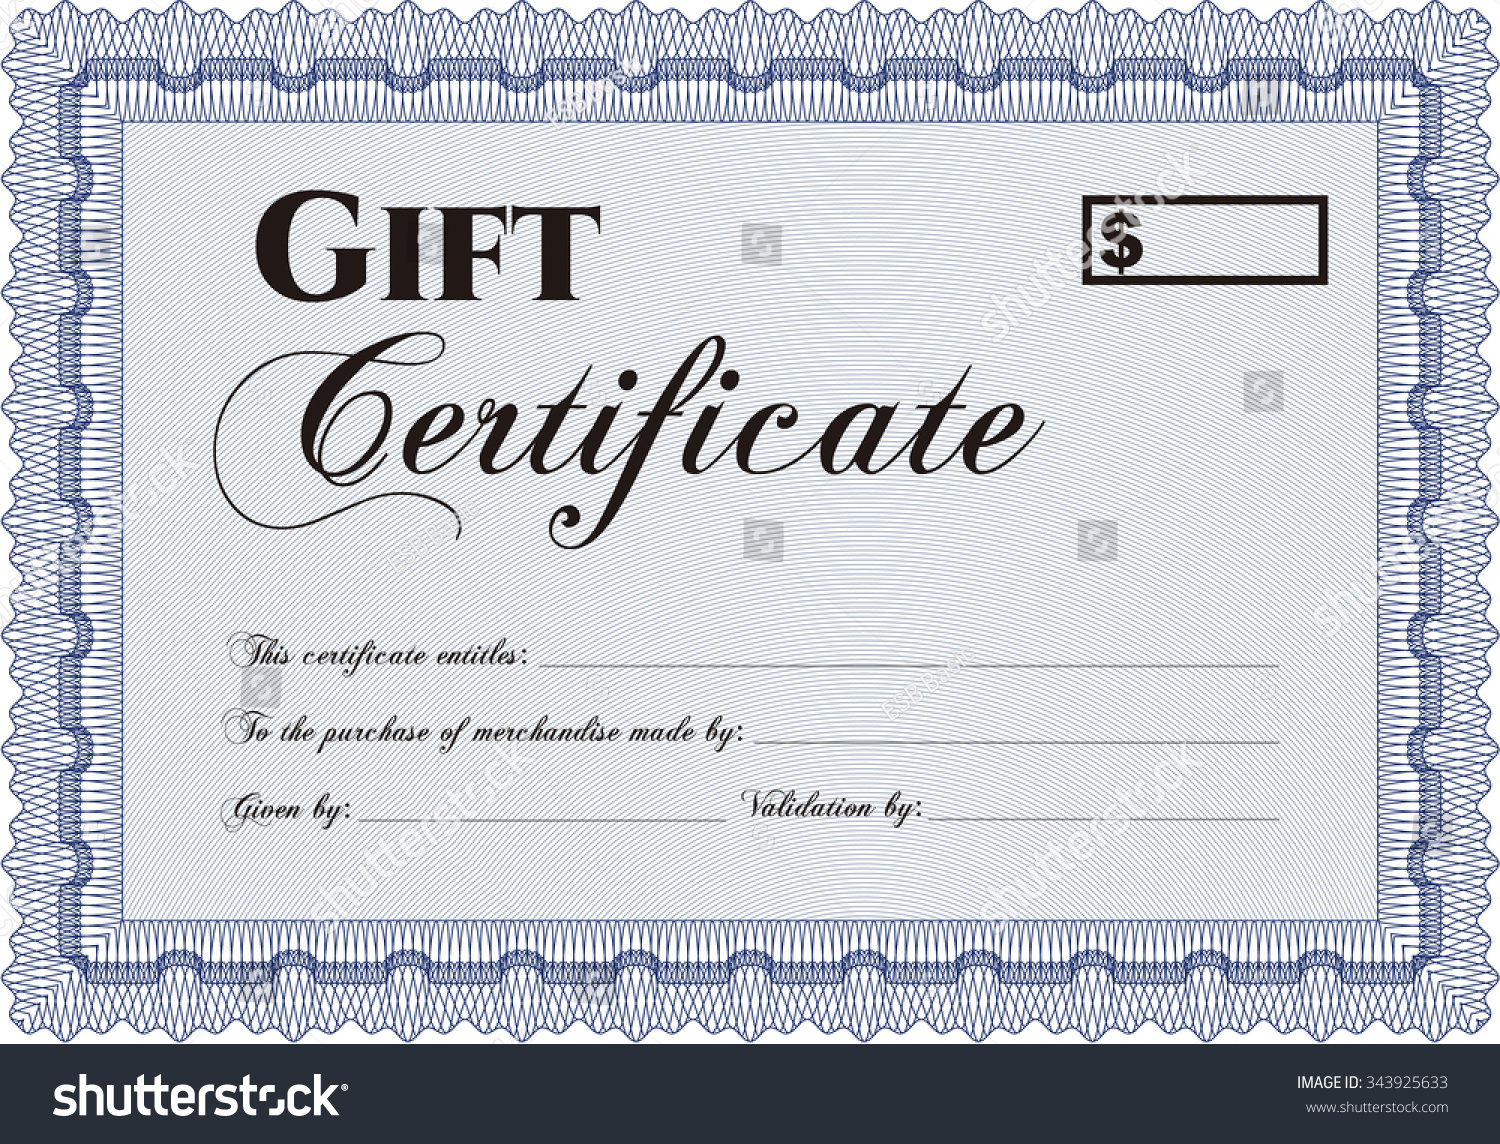 retro gift certificate template nice design stock vector  retro gift certificate template nice design linear background detailed